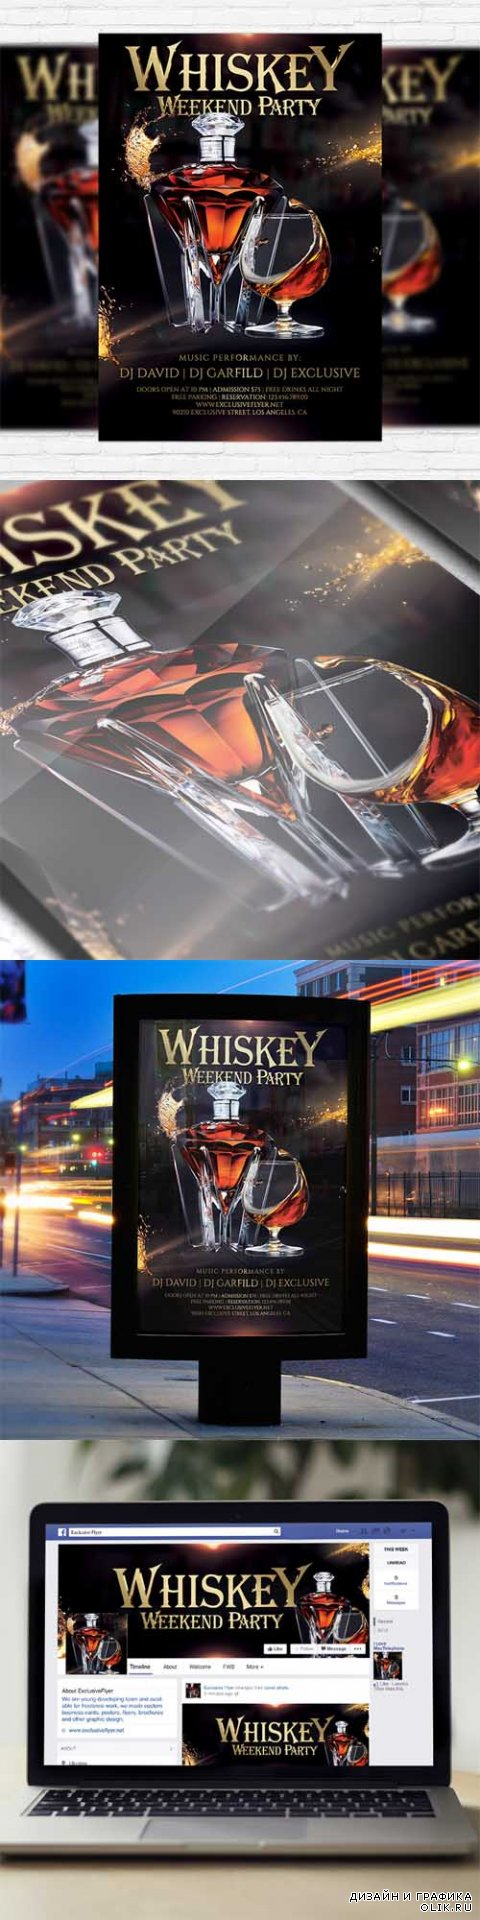 Flyer Template - Whiskey Weekend Party + Facebook Cover